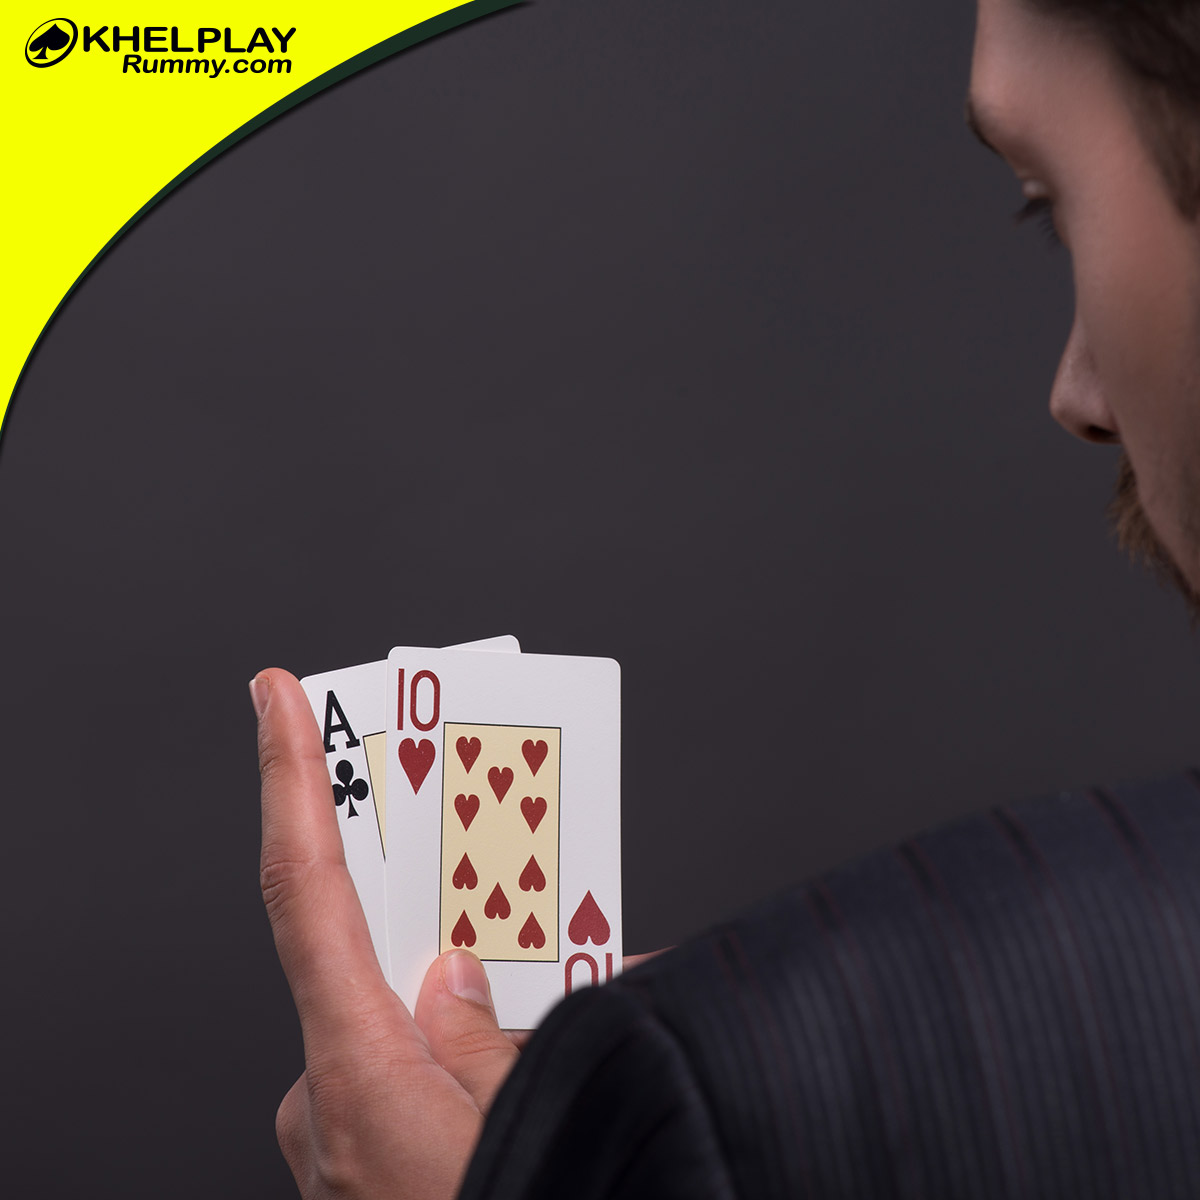 Learn the Ultimate Rummy Skills for Tournaments